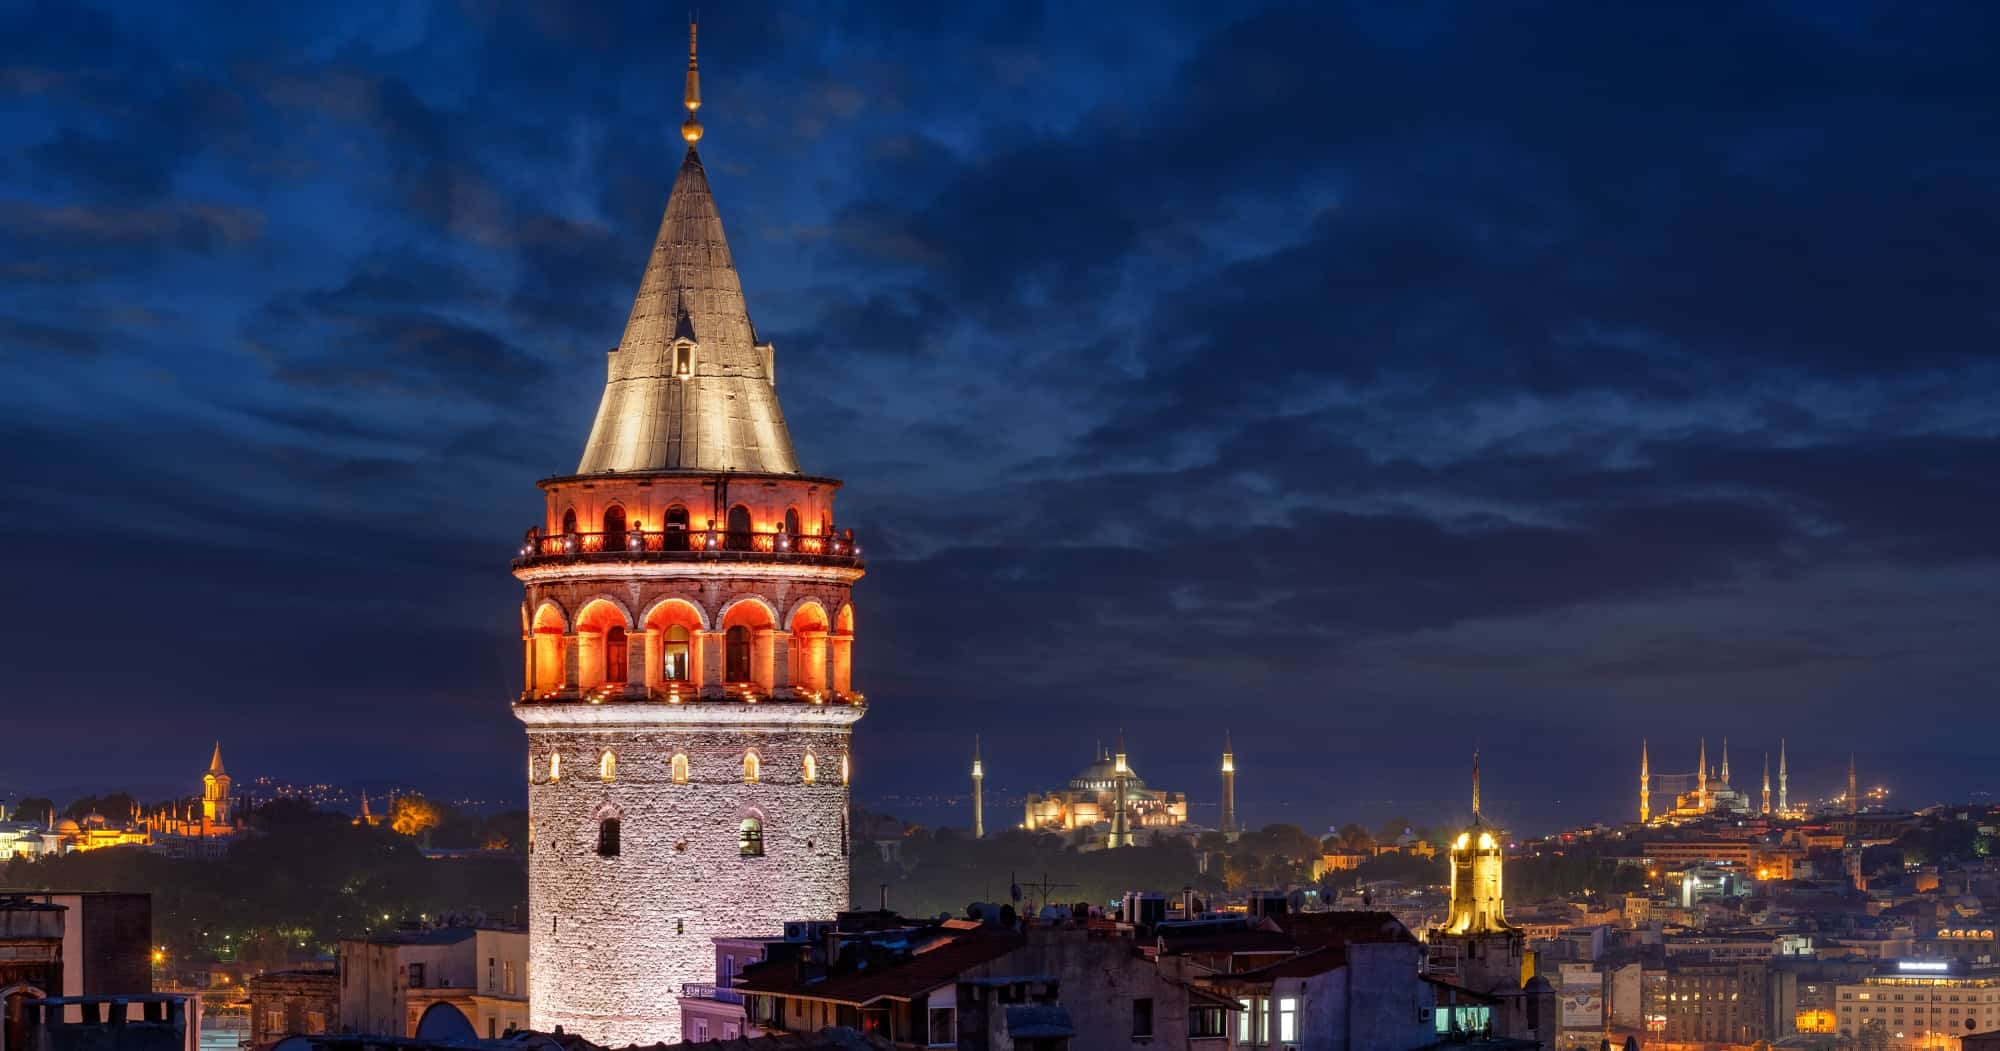 Galata tower by night in Istanbul